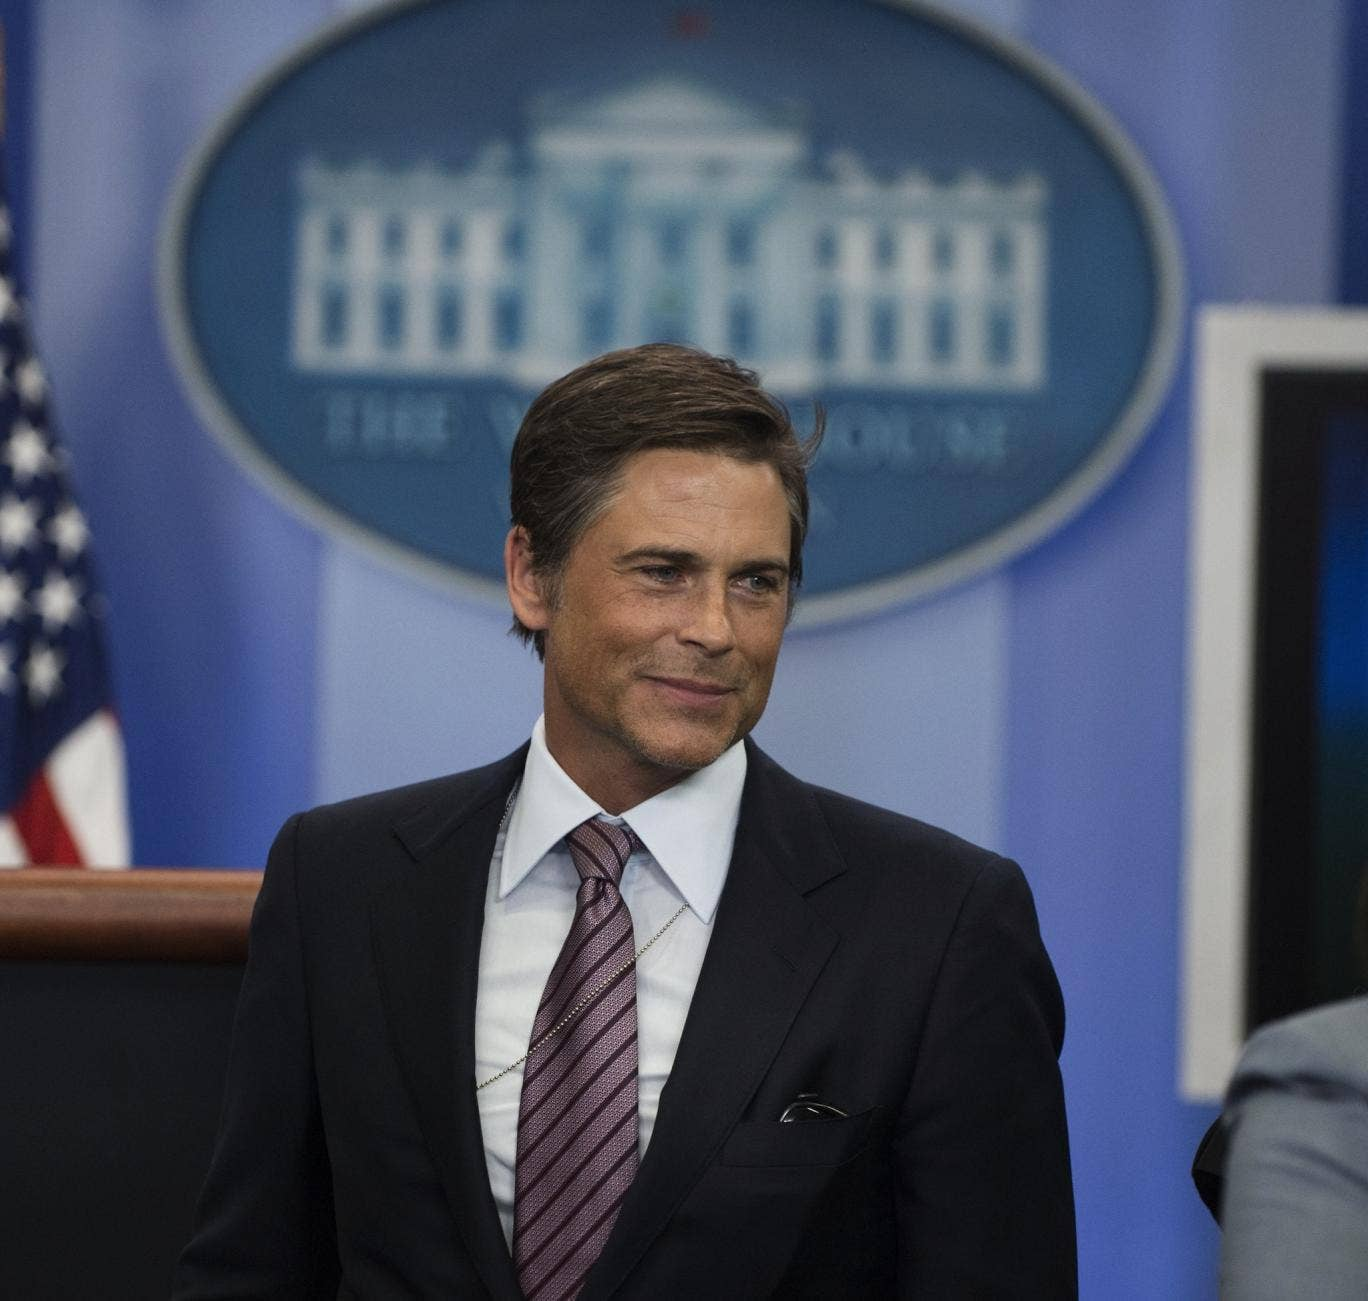 Actor Rob Lowe visits the White House earlier this year